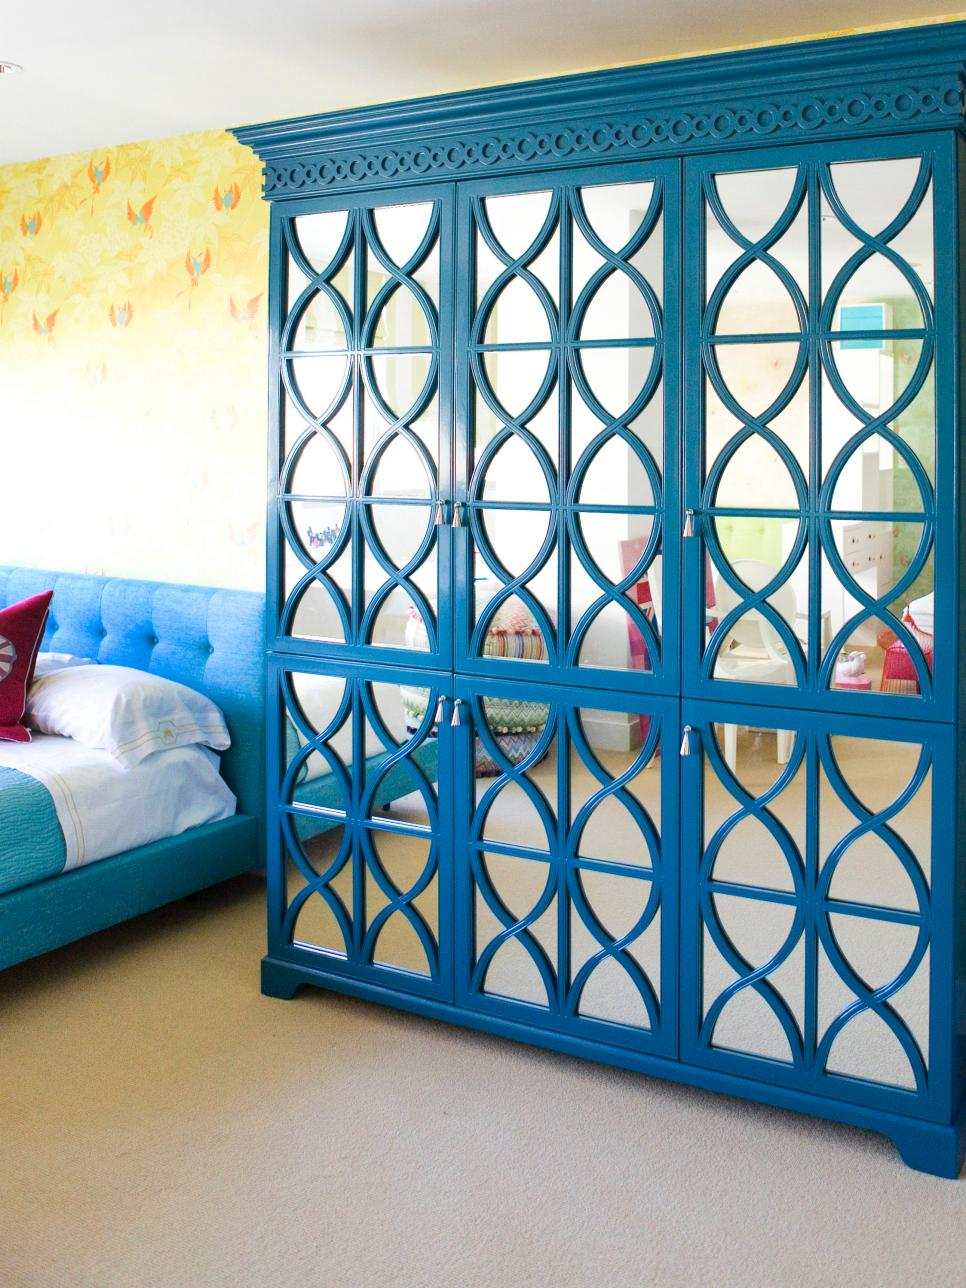 Turquoise mirrored blue armoire